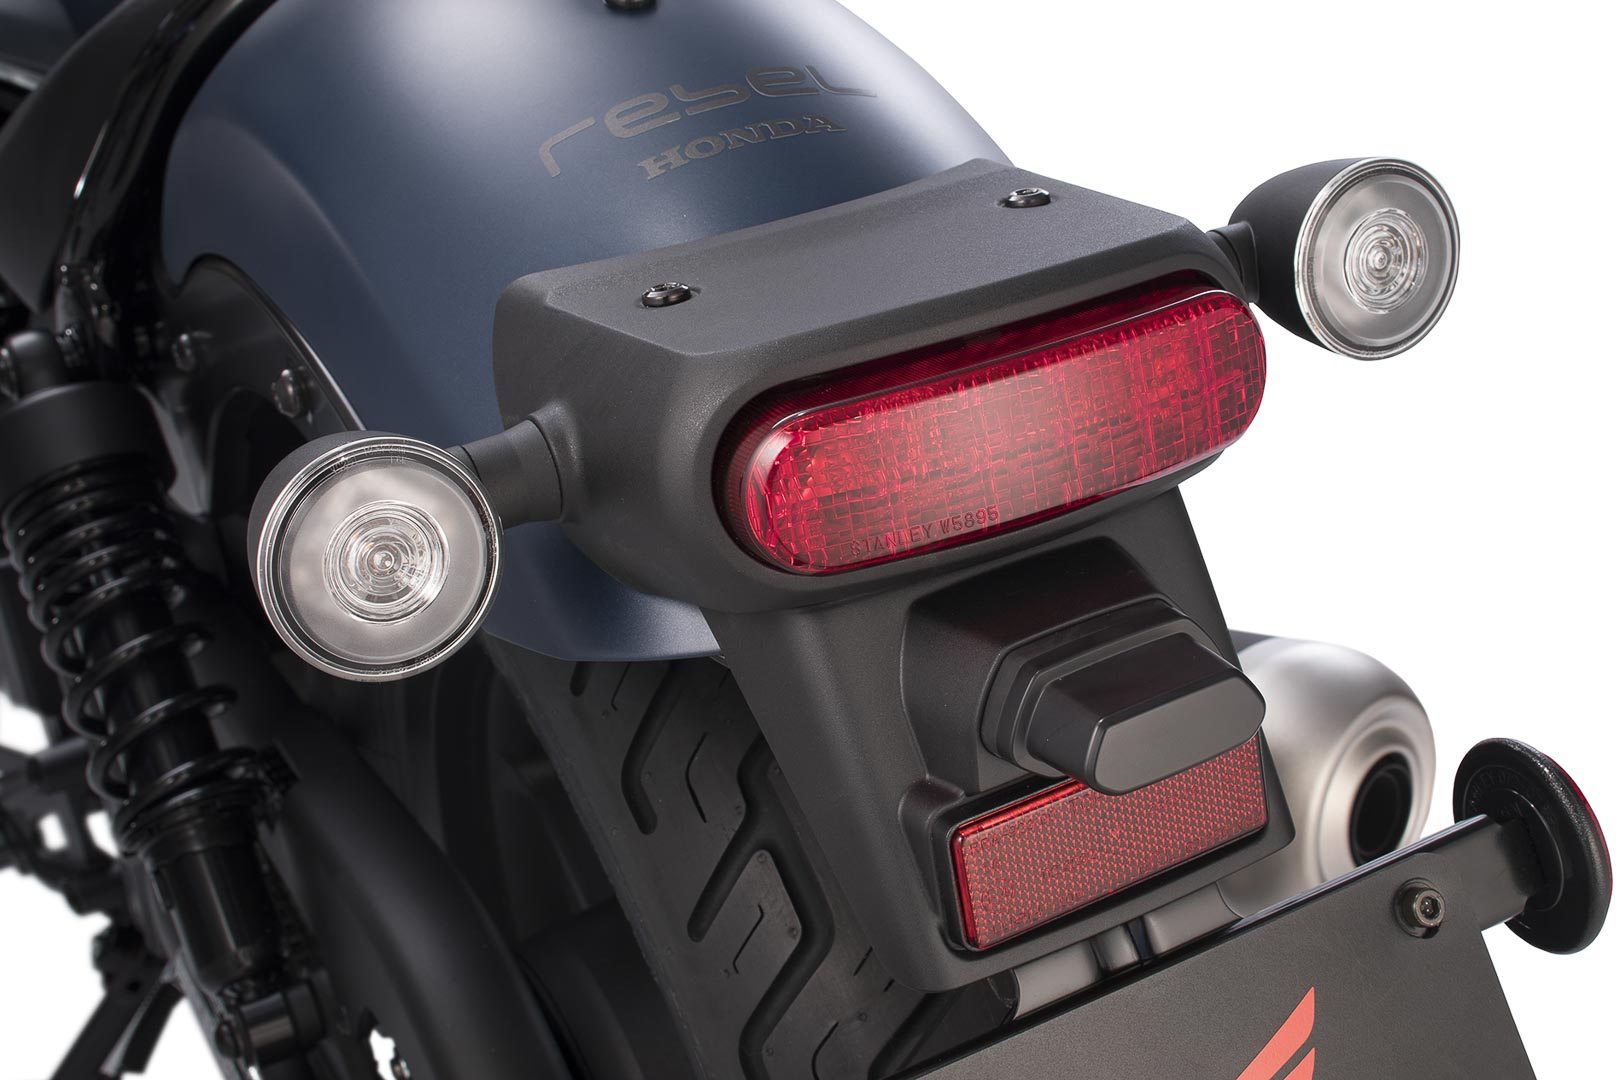 2020 Honda Rebel 500 And Rebel 300 First Look 8 Fast Facts